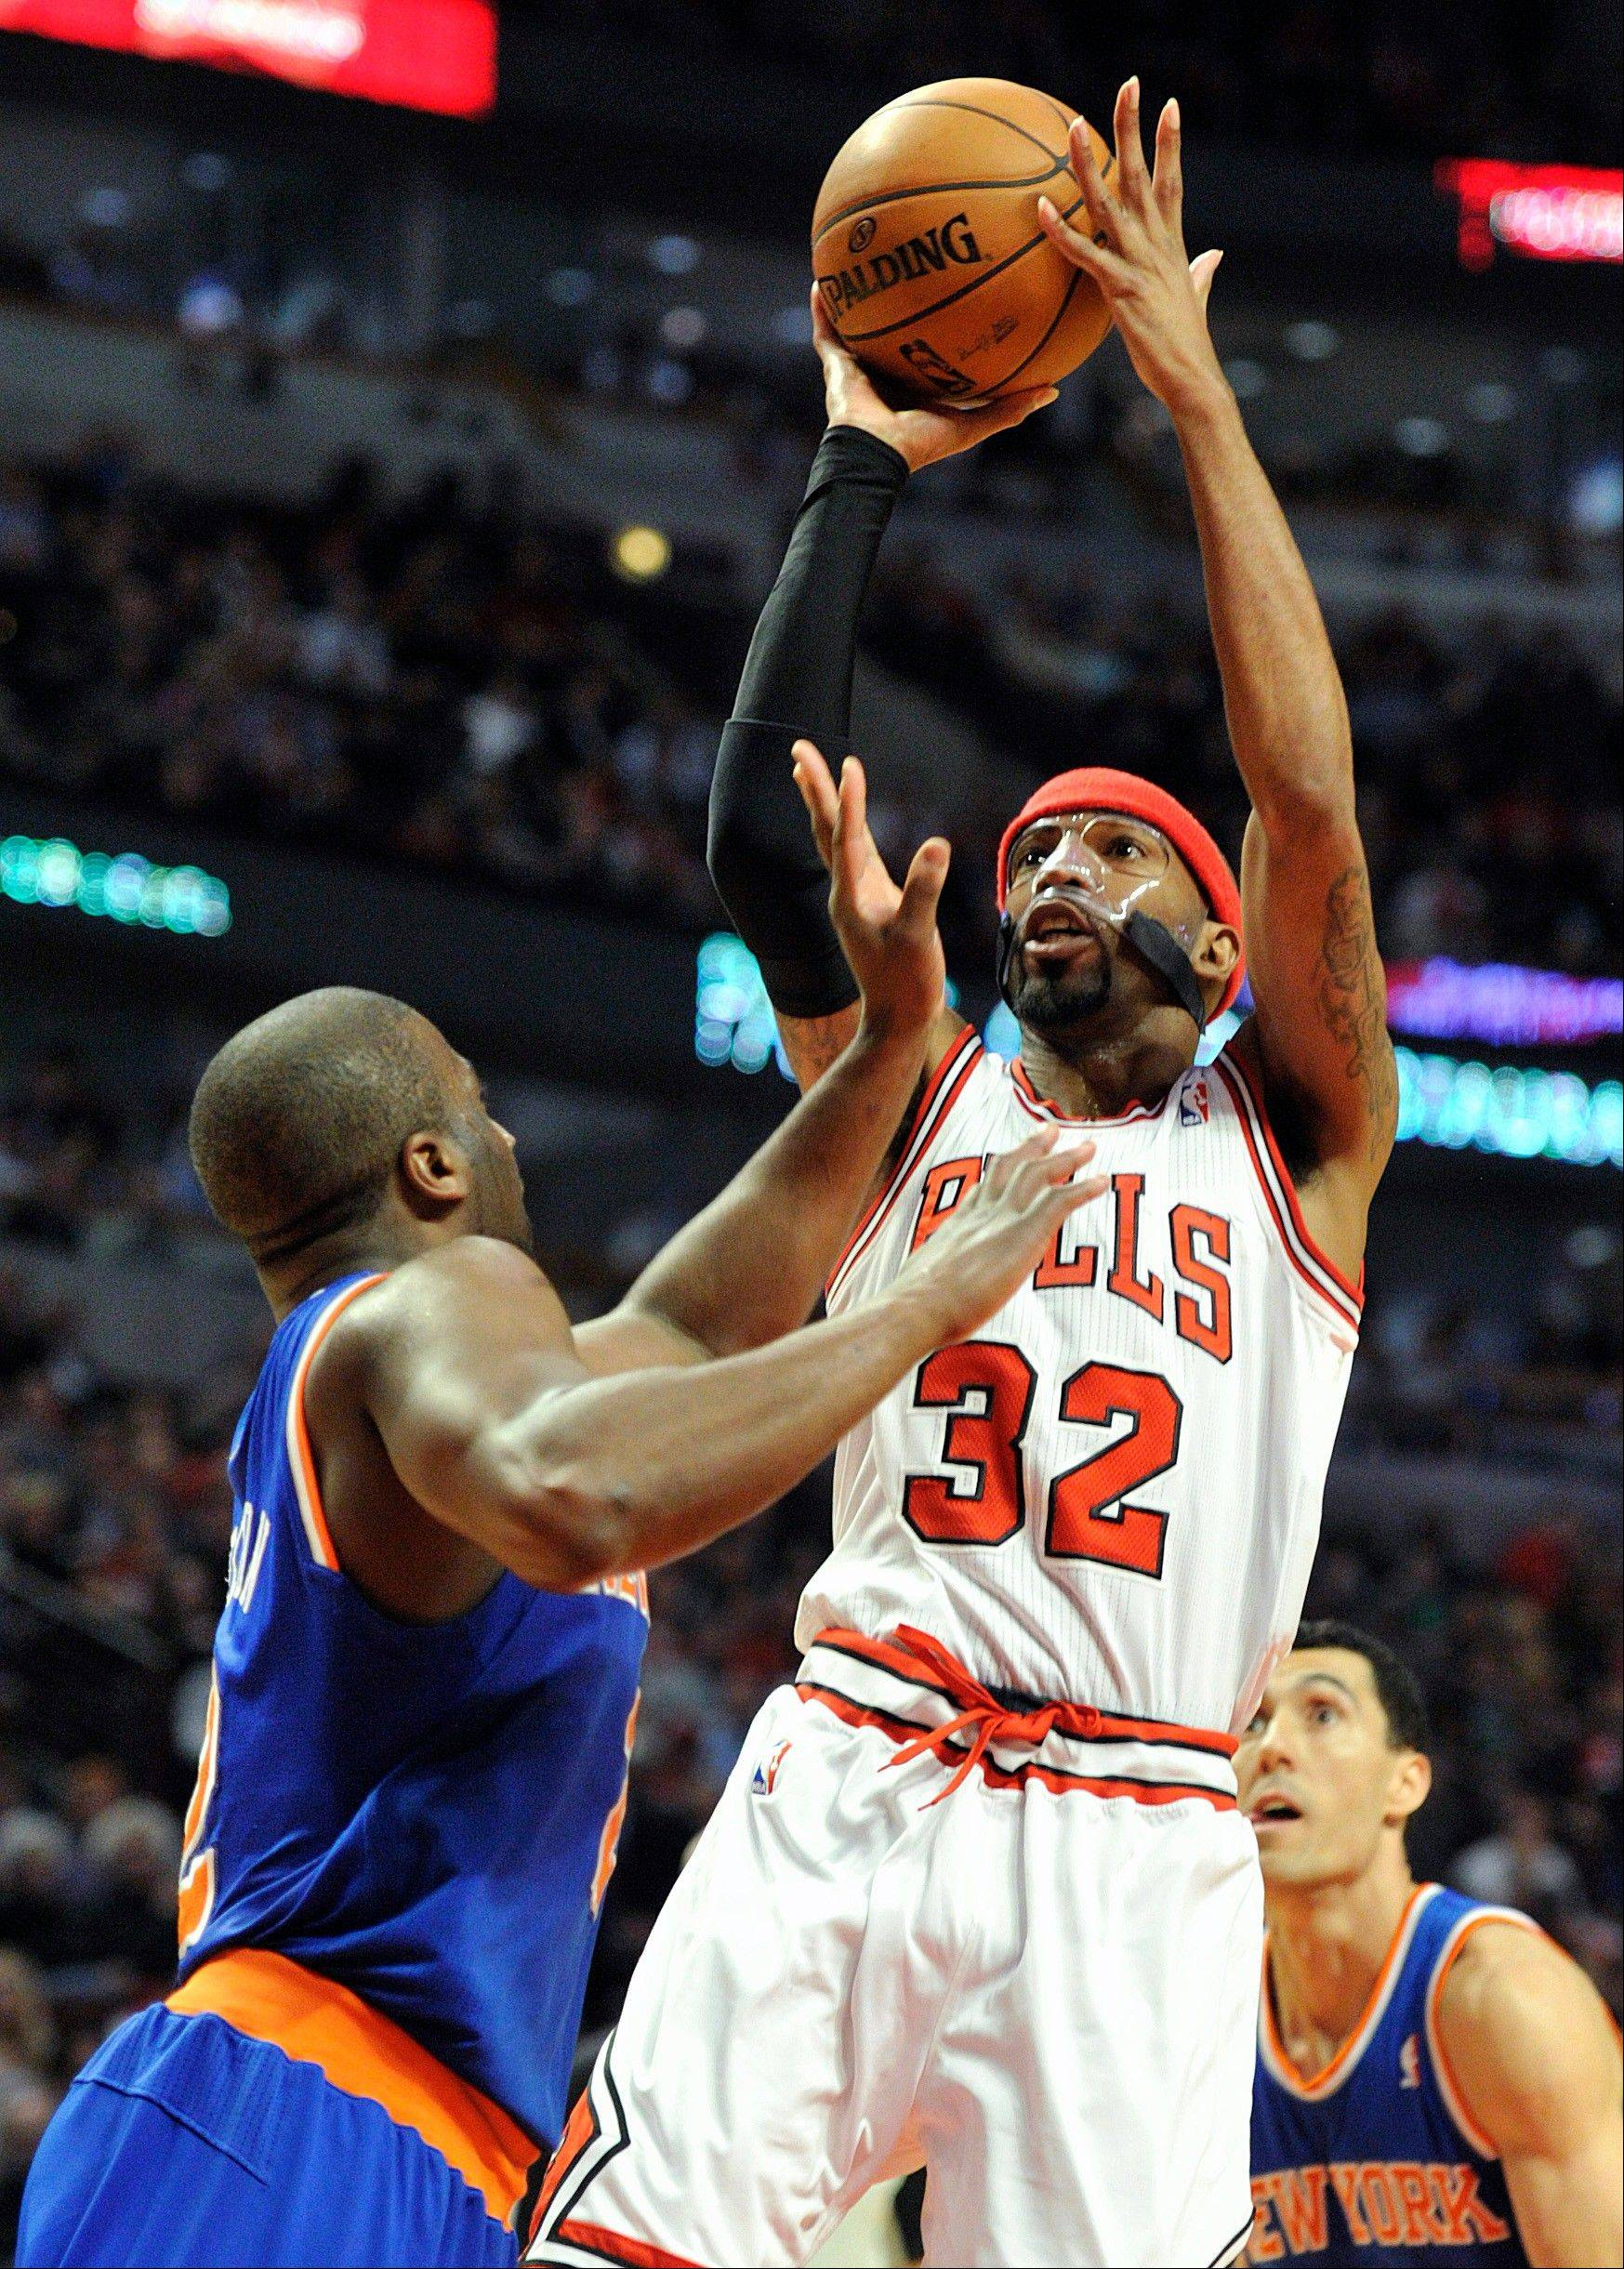 Chicago Bulls' Richard Hamilton (32) shoots over New York Knicks' Raymond Felton left, during the second half of an NBA basketball game, Thursday, April 11, 2013, in Chicago. The Bulls won 118-111 in overtime.